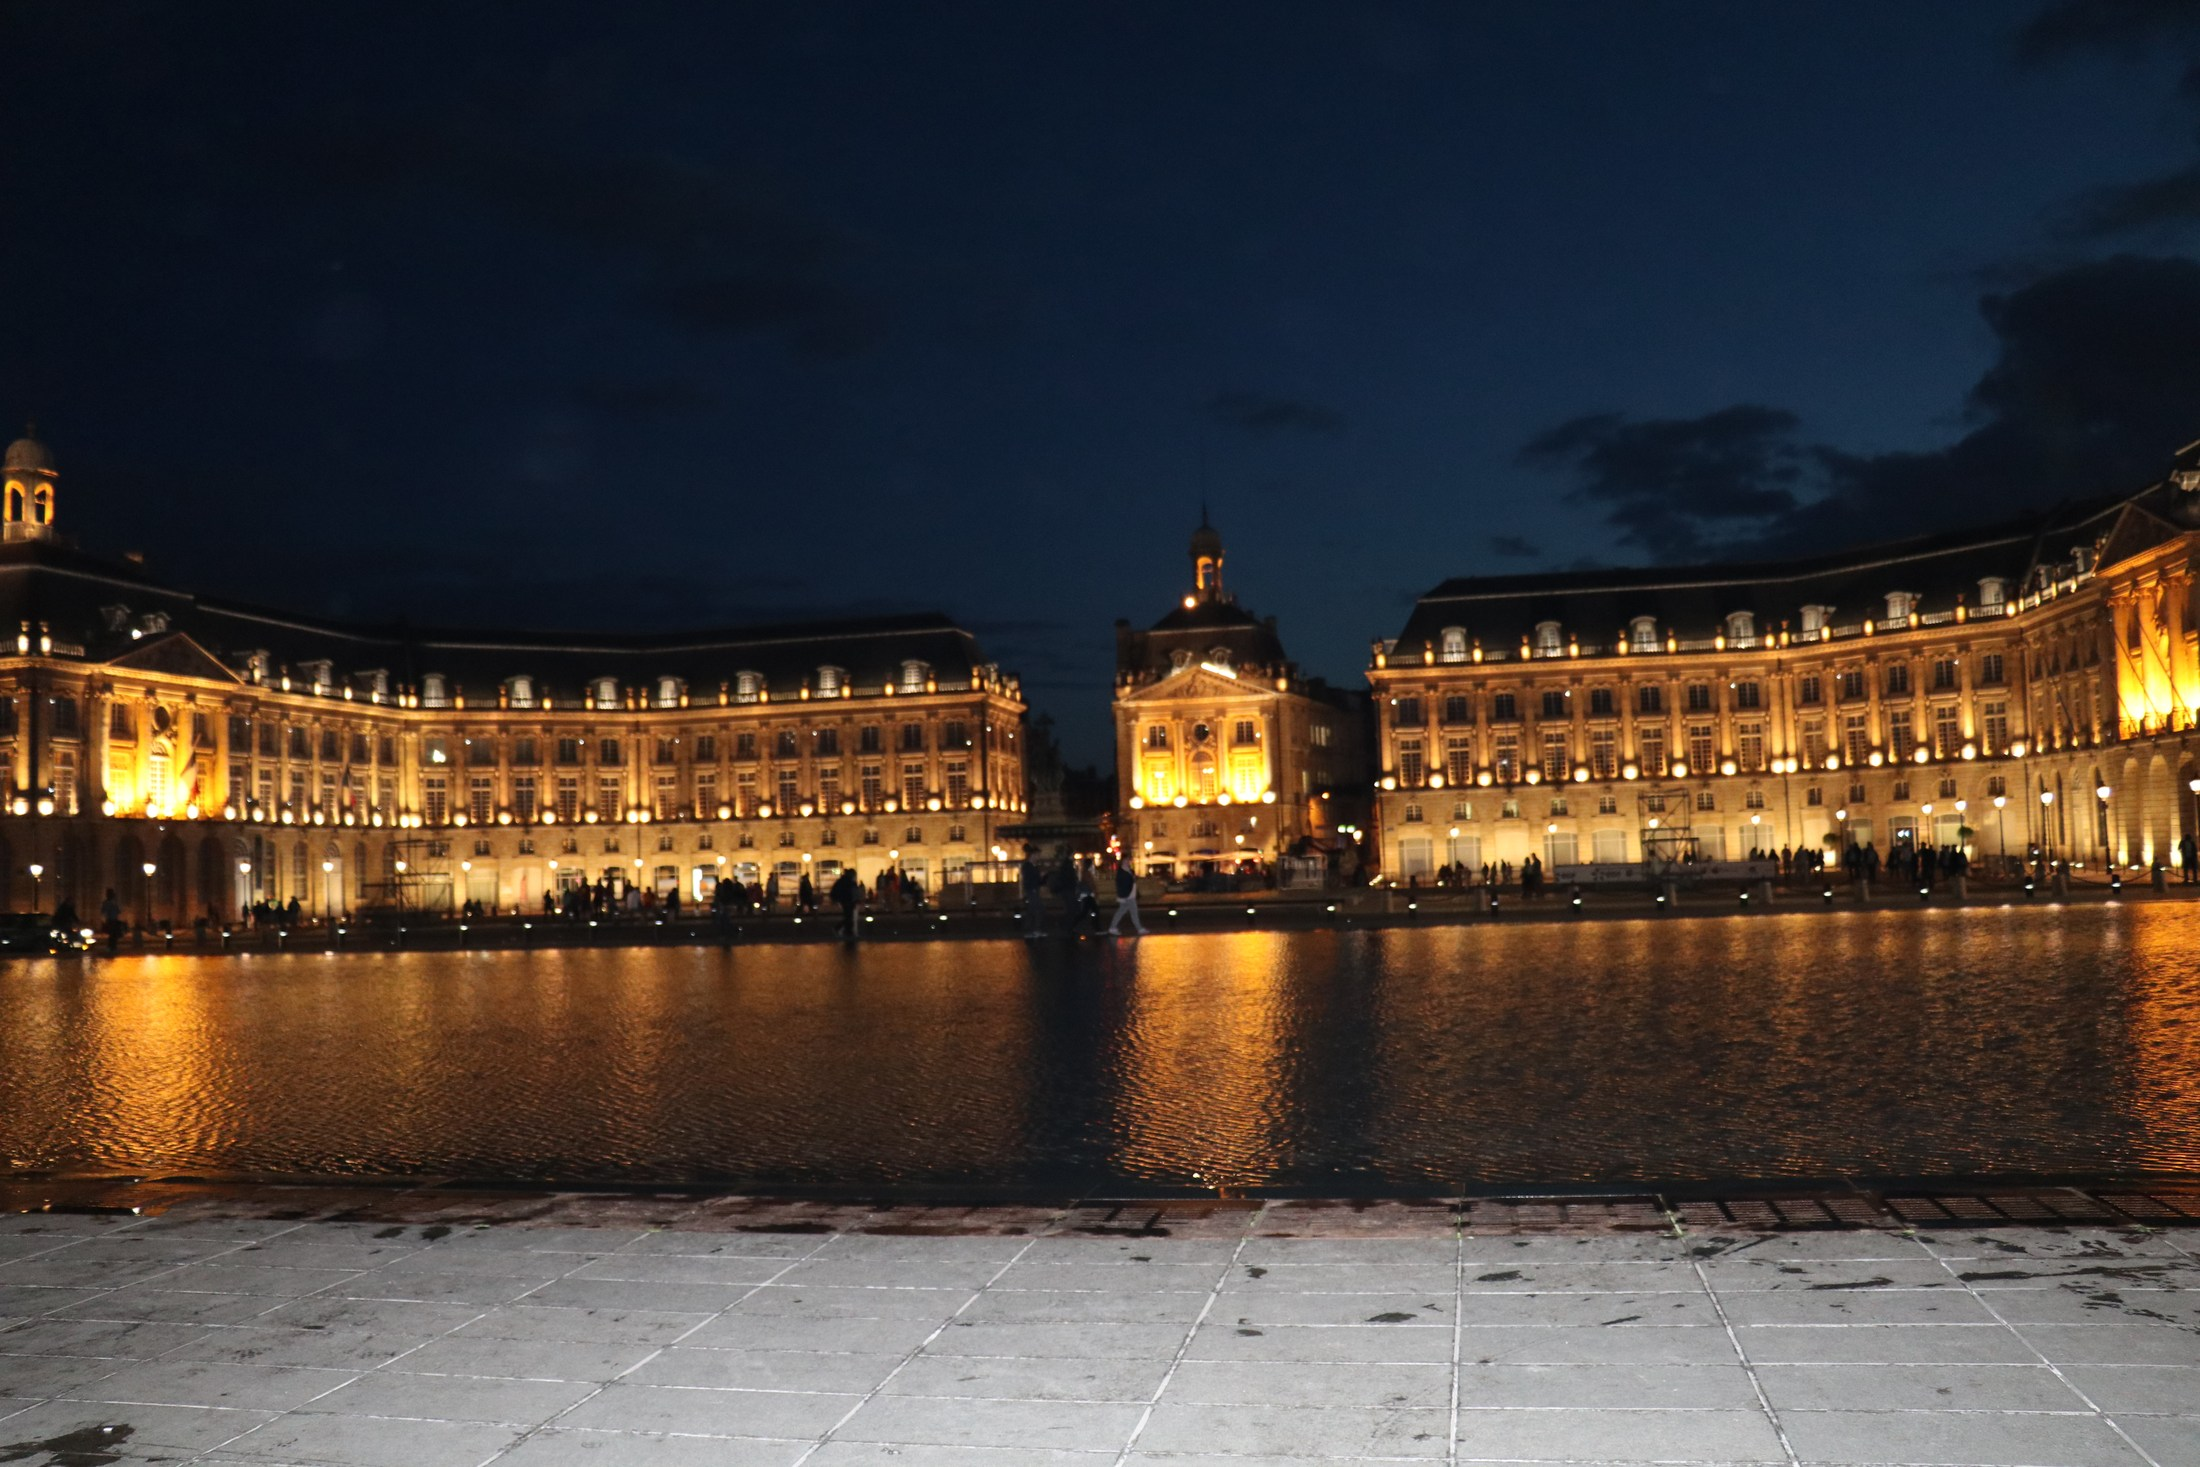 Miroir d'eau (Water Mirror) or Miroir des Quais (Quay Mirror) in Bordeaux is the world's largest reflecting pool, covering 3,450 square metres (37,100 sq ft). Located on the quay of the Garonne in front of the Place de la Bourse, it was built in 2006.  It is made of granite slabs covered by 2 cm of water. In summer, a system allows it to create fog every 15 minutes.